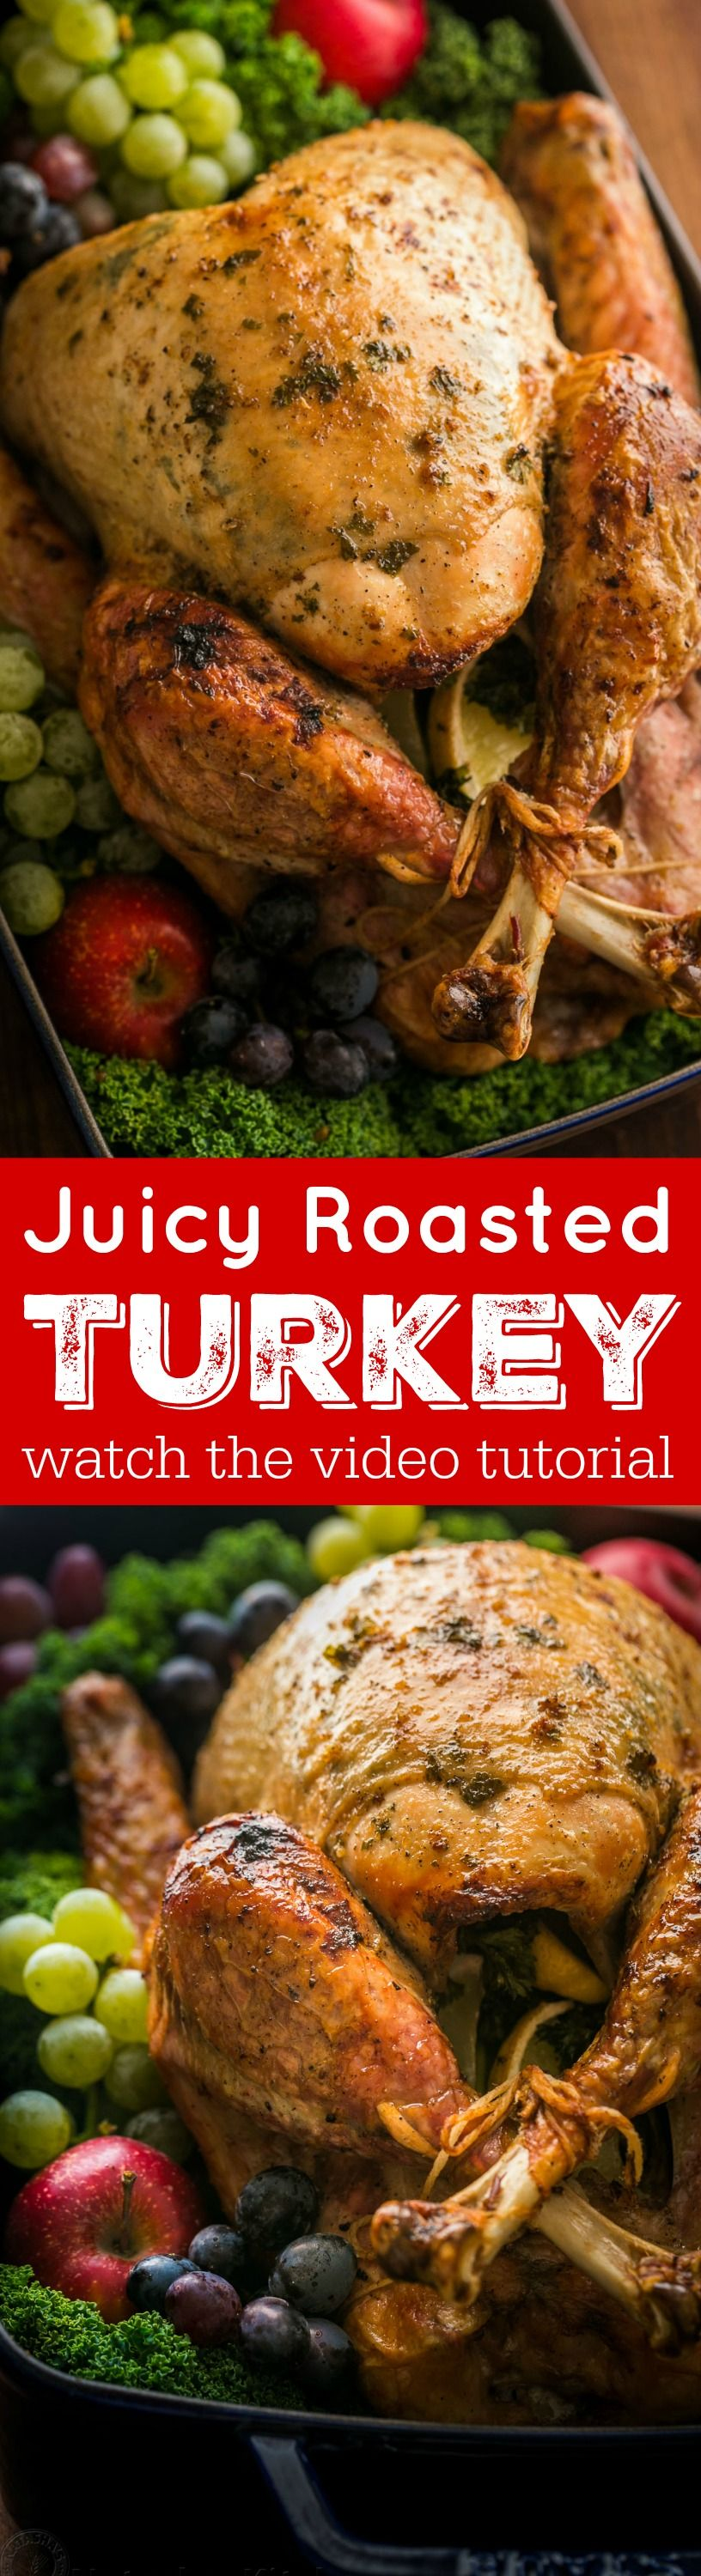 Making a juicy and flavorful Thanksgiving Turkey is easier